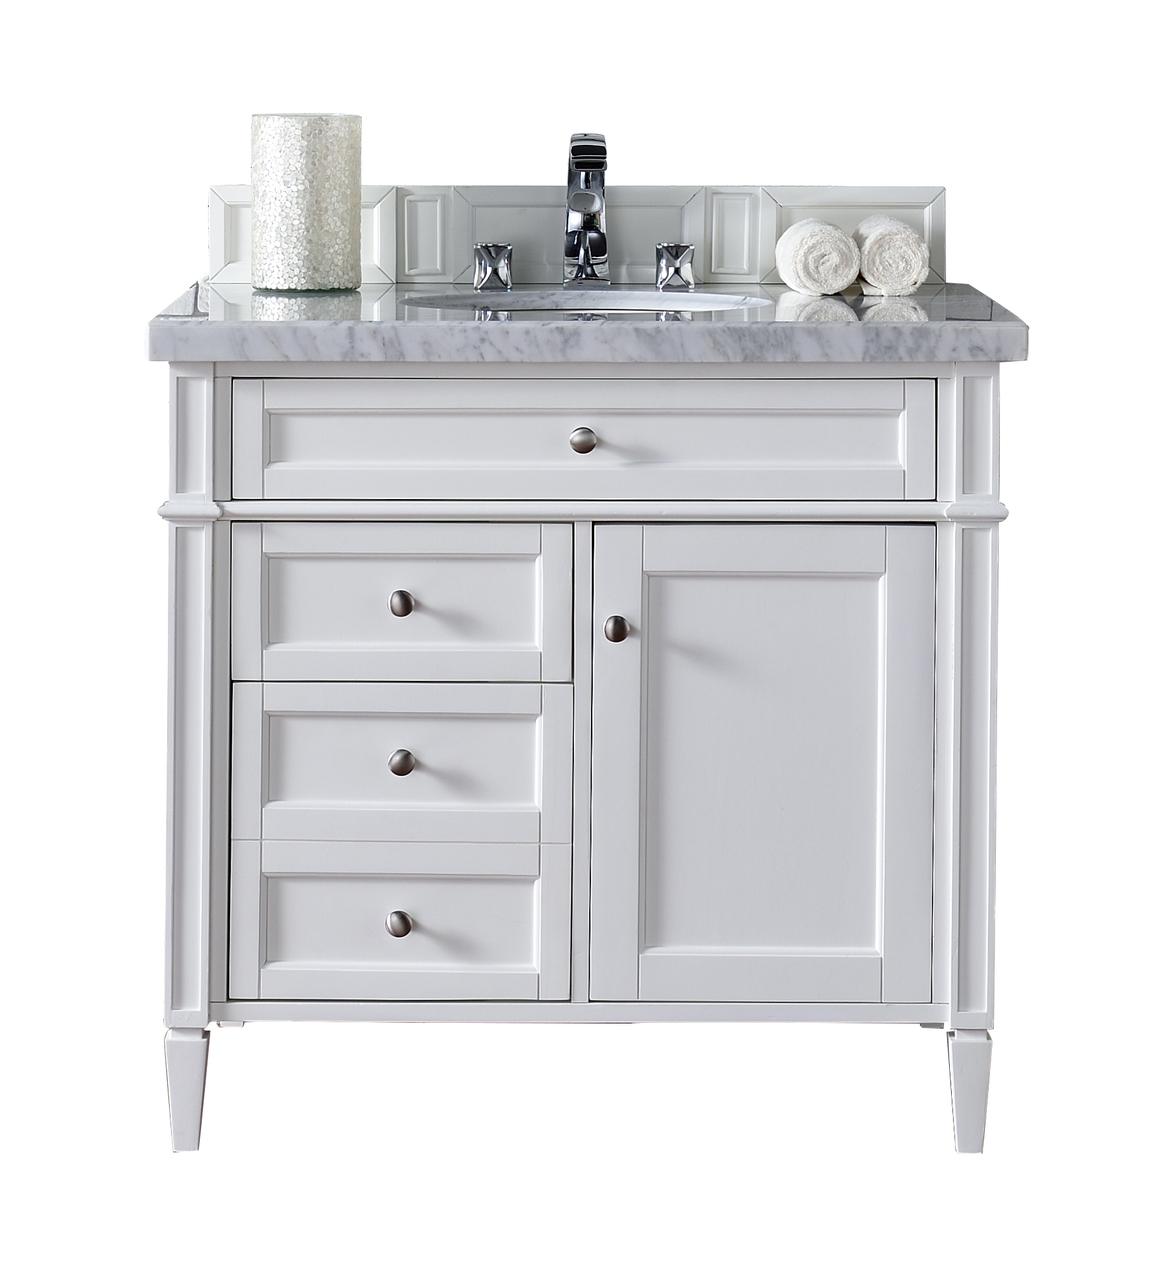 Bathroom Vanities With Sink On Left Side Small House Interior Design